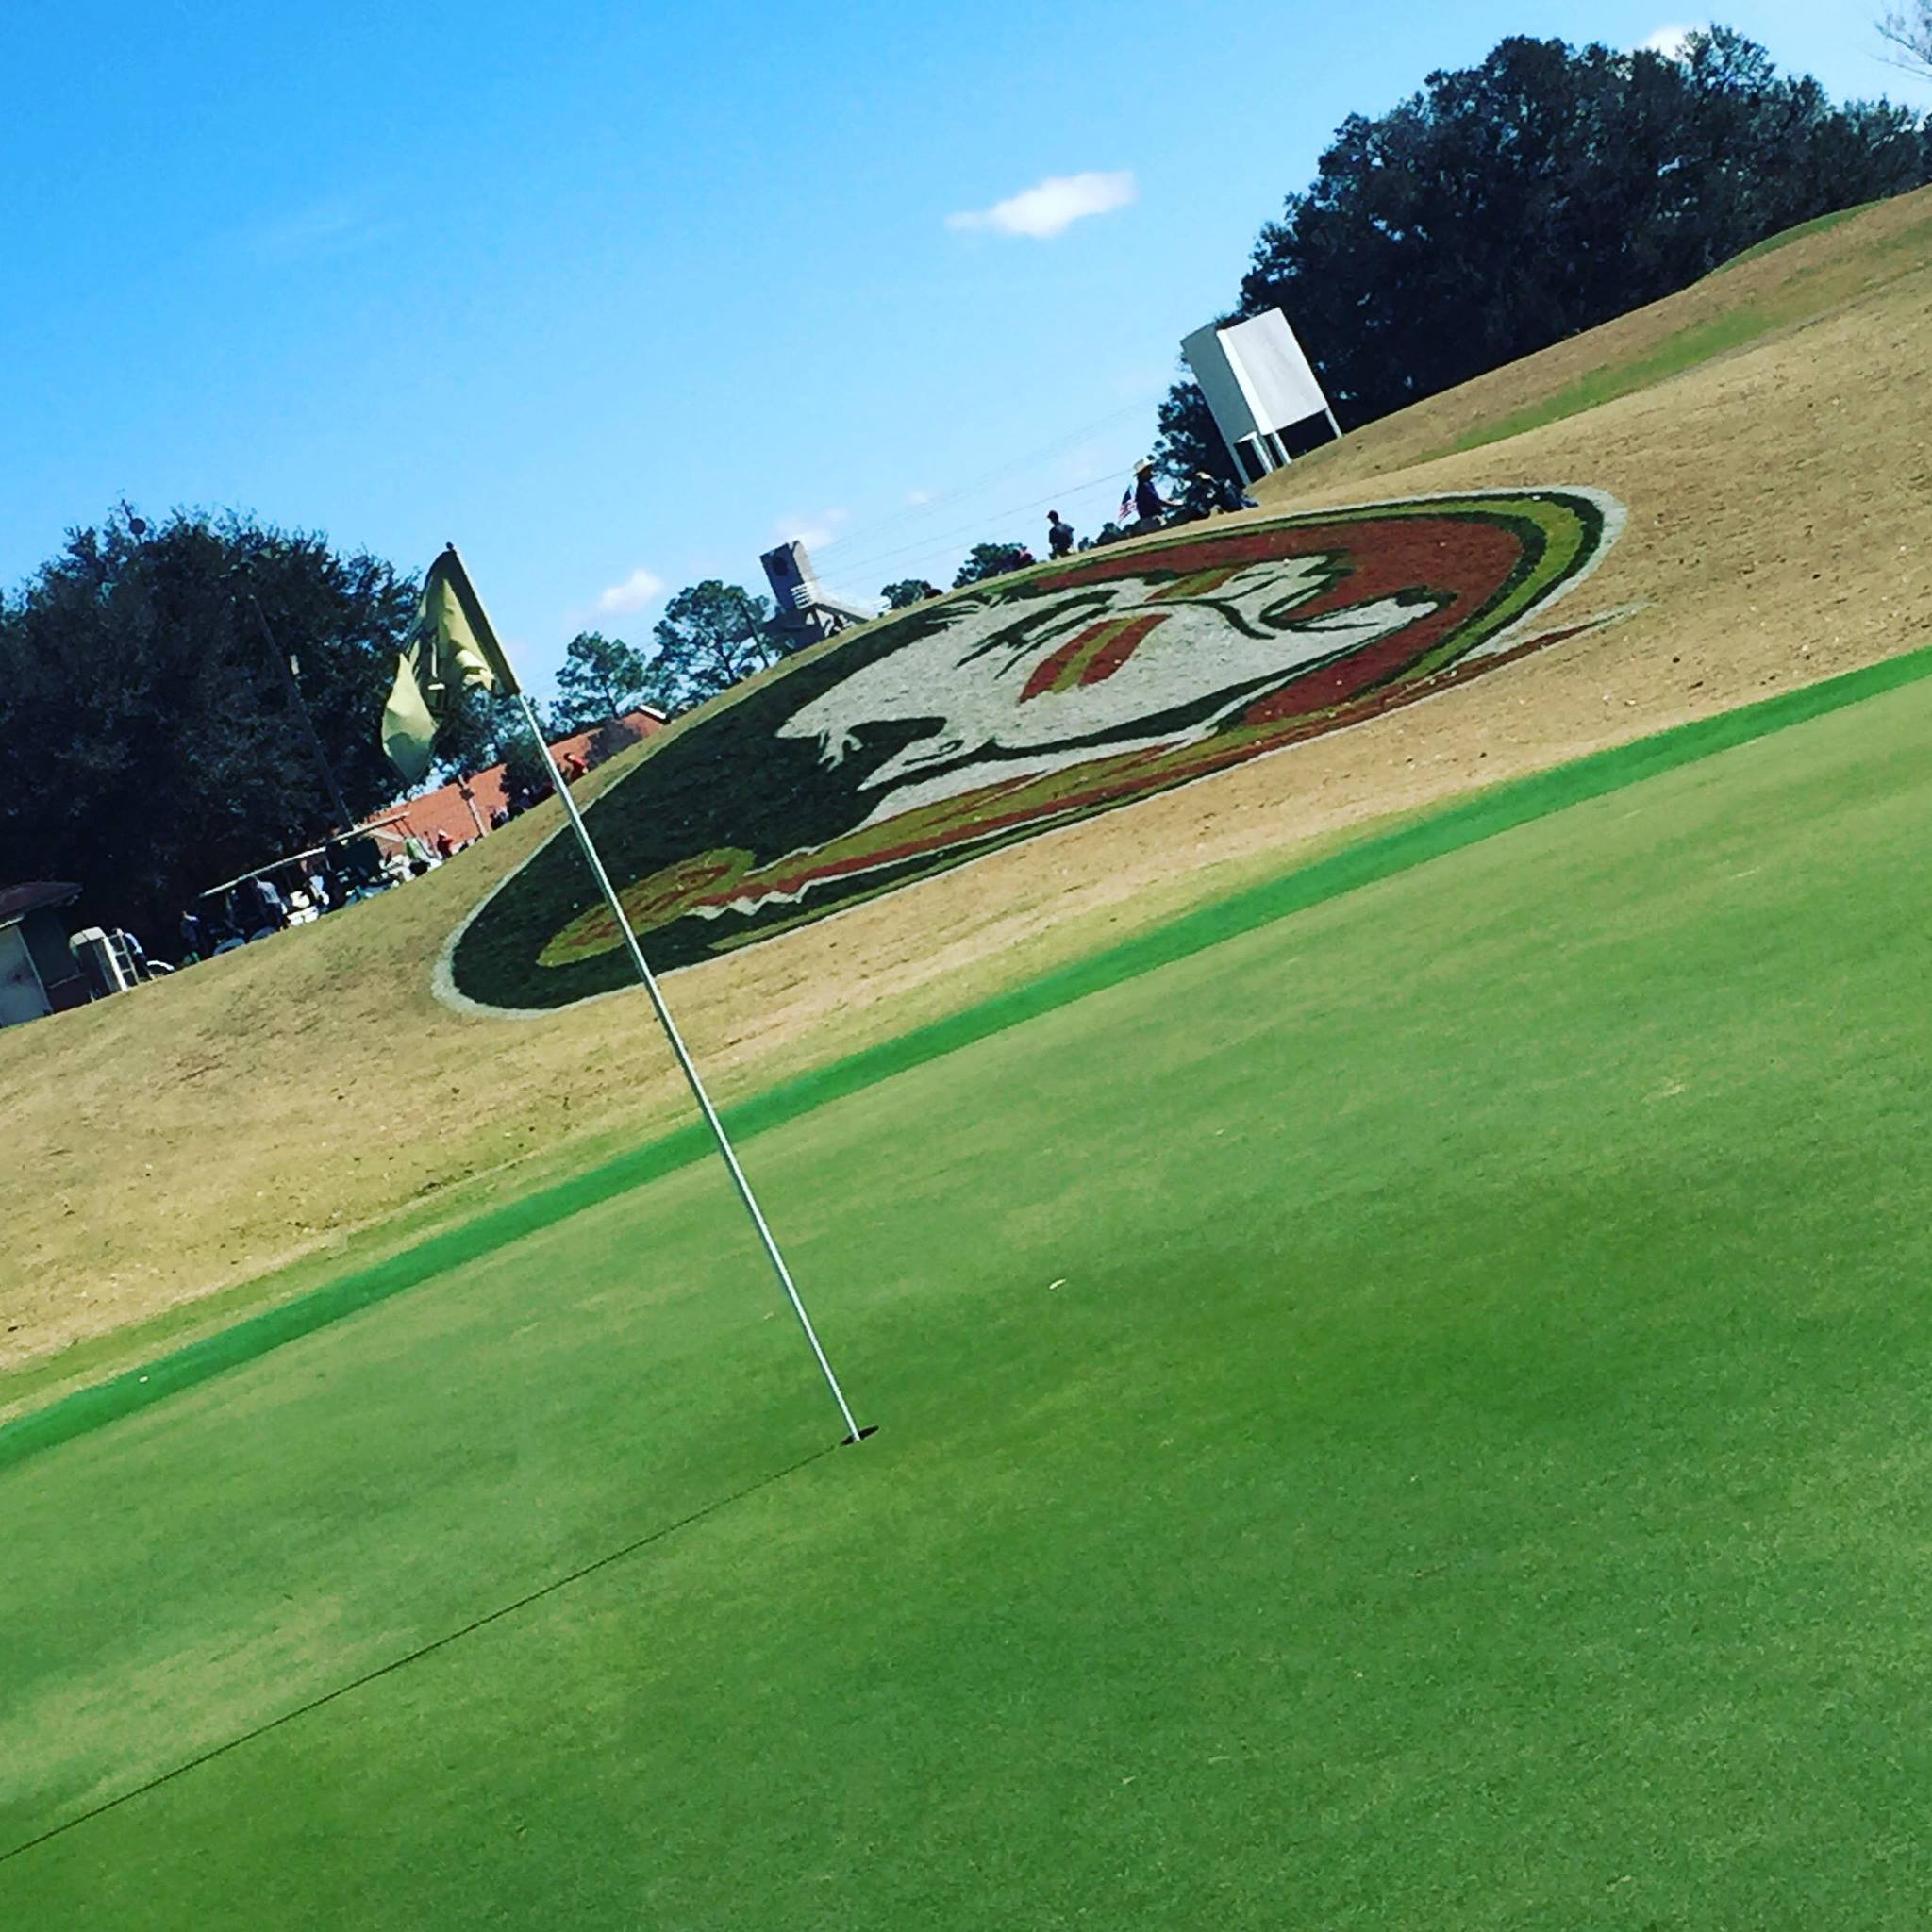 Don Veller Seminole Golf Course was last renovated in 2001.